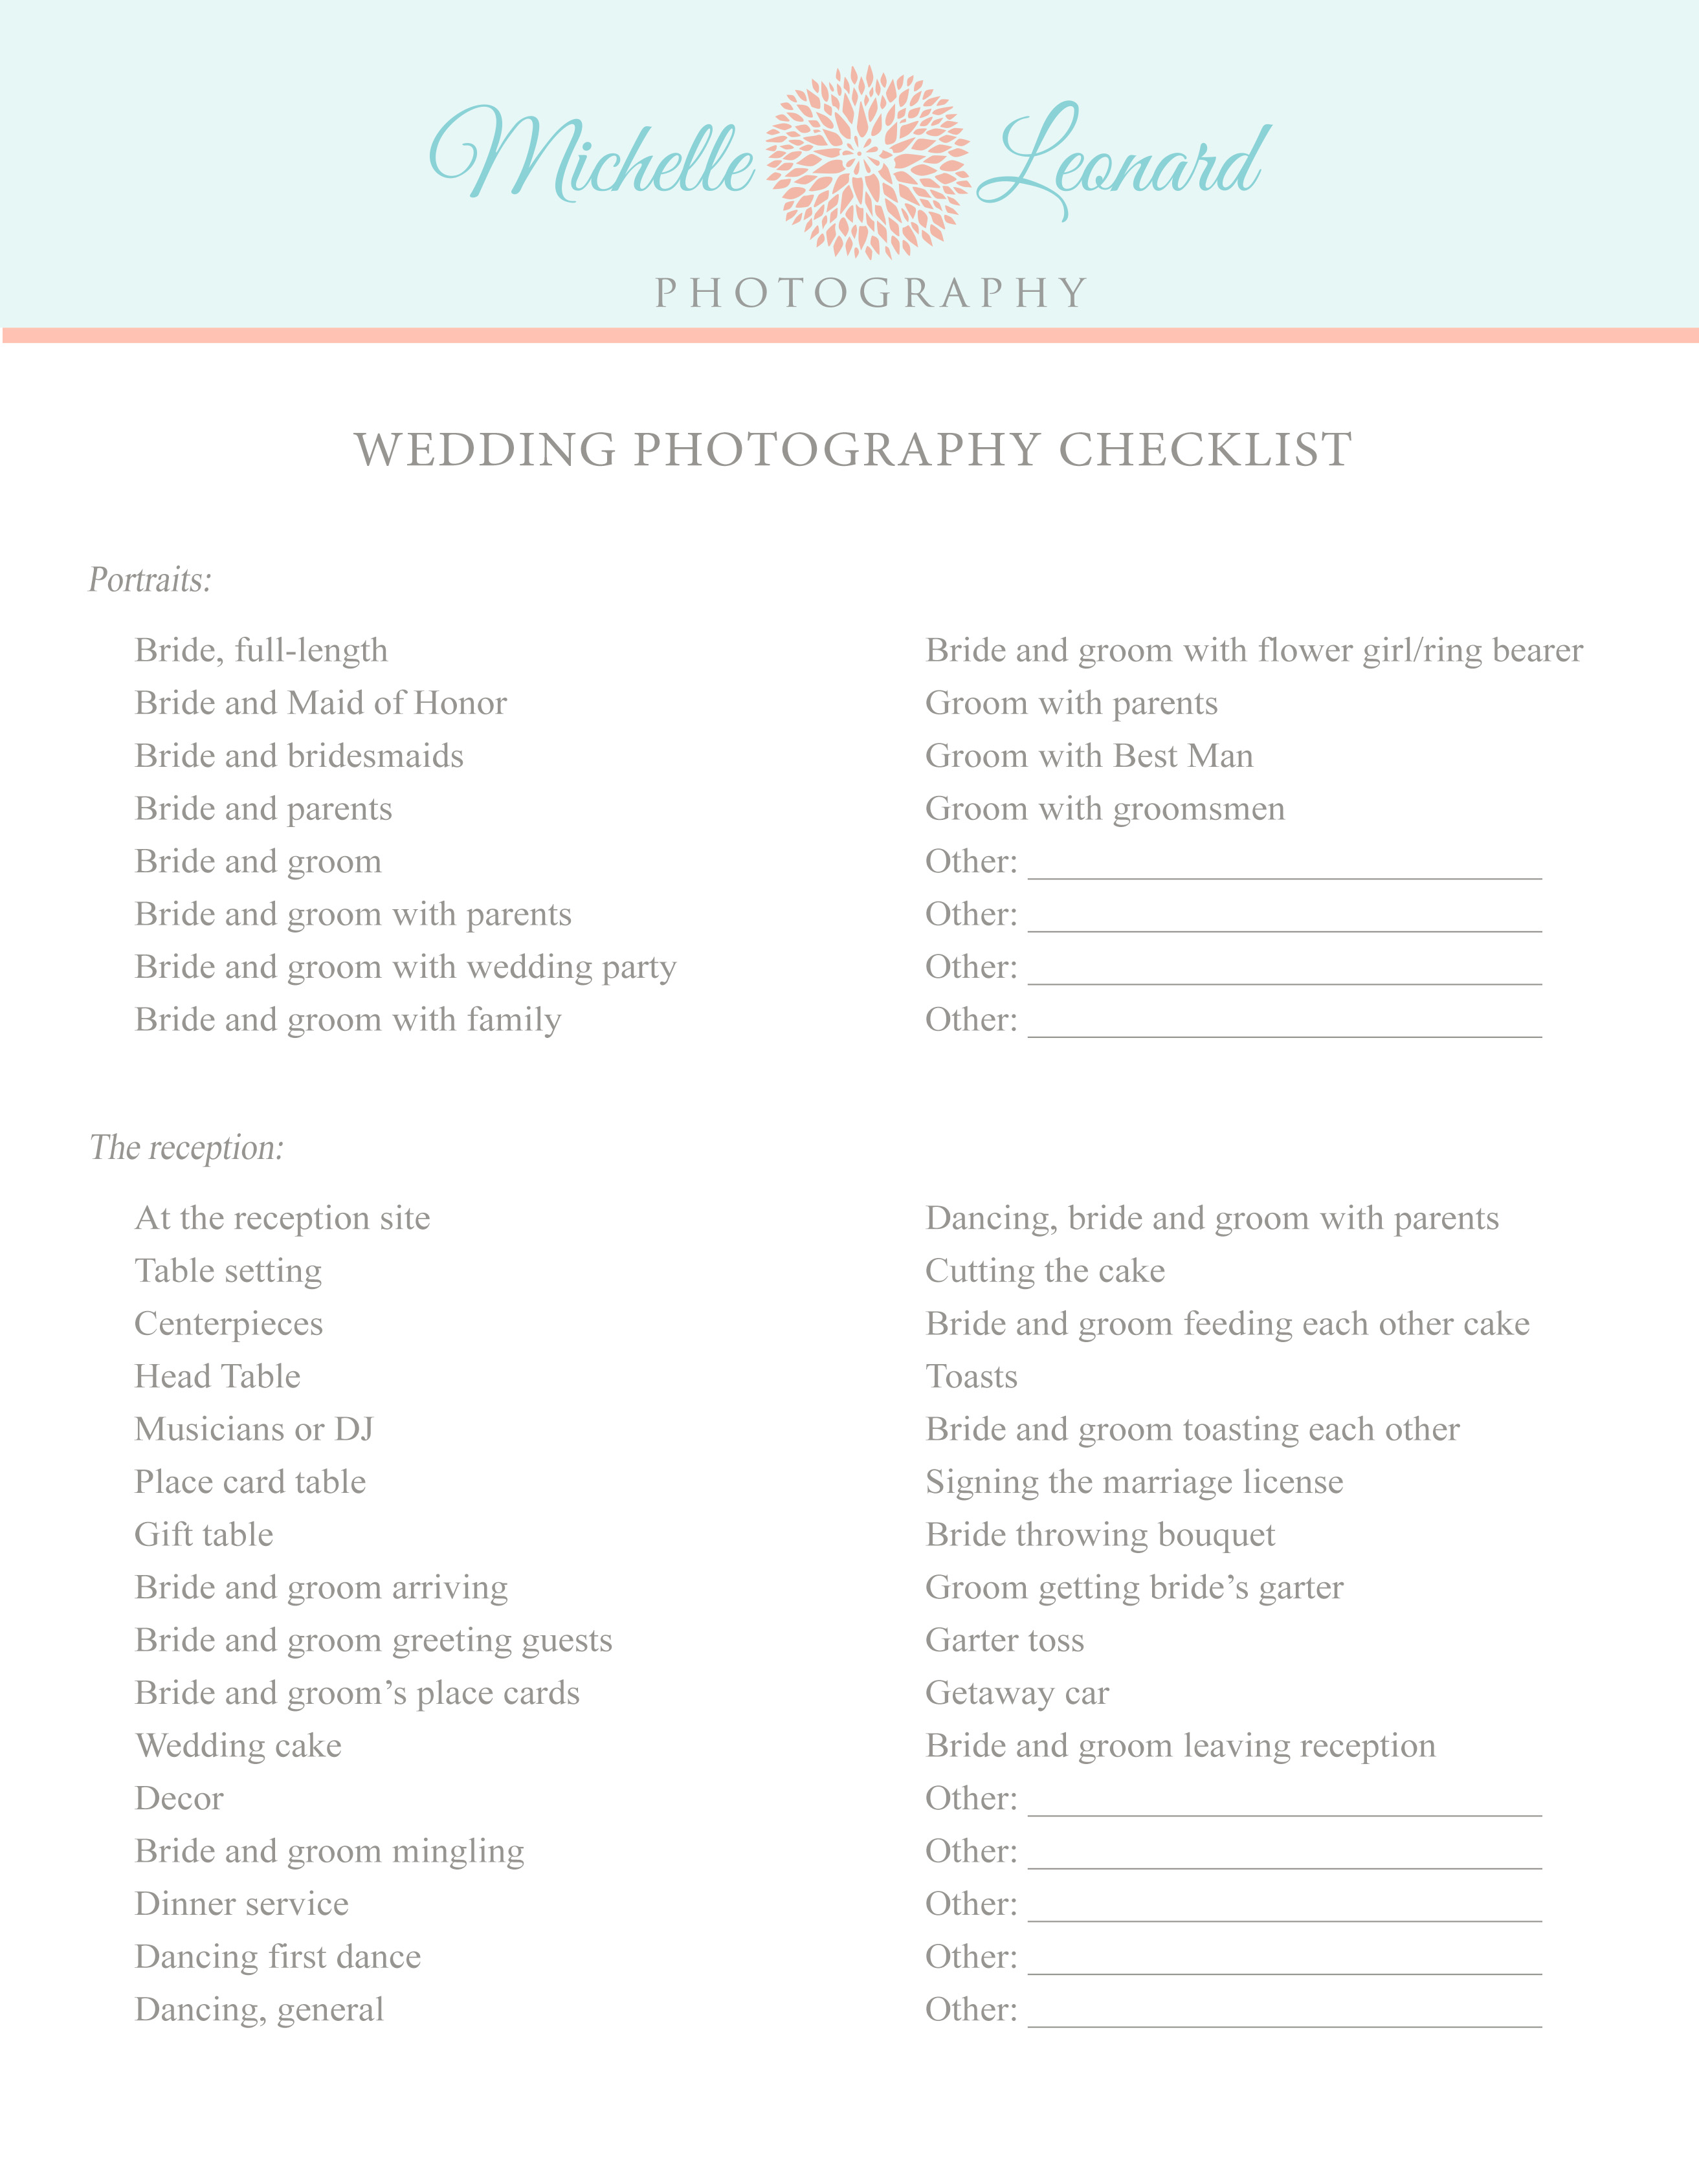 Modish Wedding Photography Wedding Photography Checklist Pg Form Samples Michelle Leonard Photography Wedding Photography Checklist Pdf Checklist wedding Wedding Photography Checklist